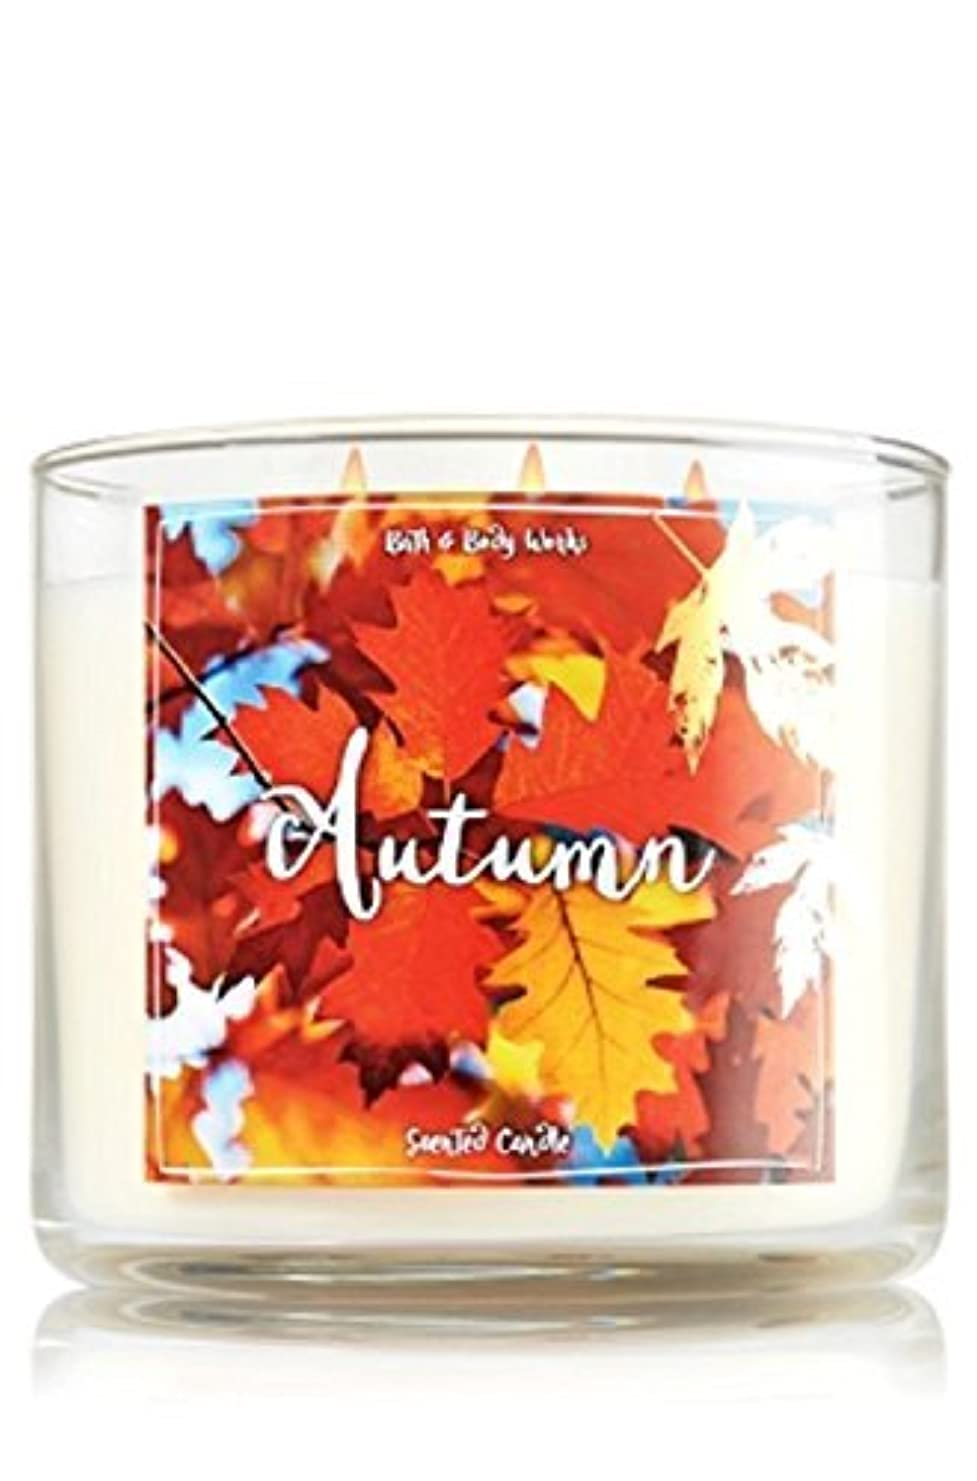 付けるかご兄Bath and Body Works Autumn Candle - Autumn Scent 14.5 oz Large 3-wick Candle for Fall [並行輸入品]